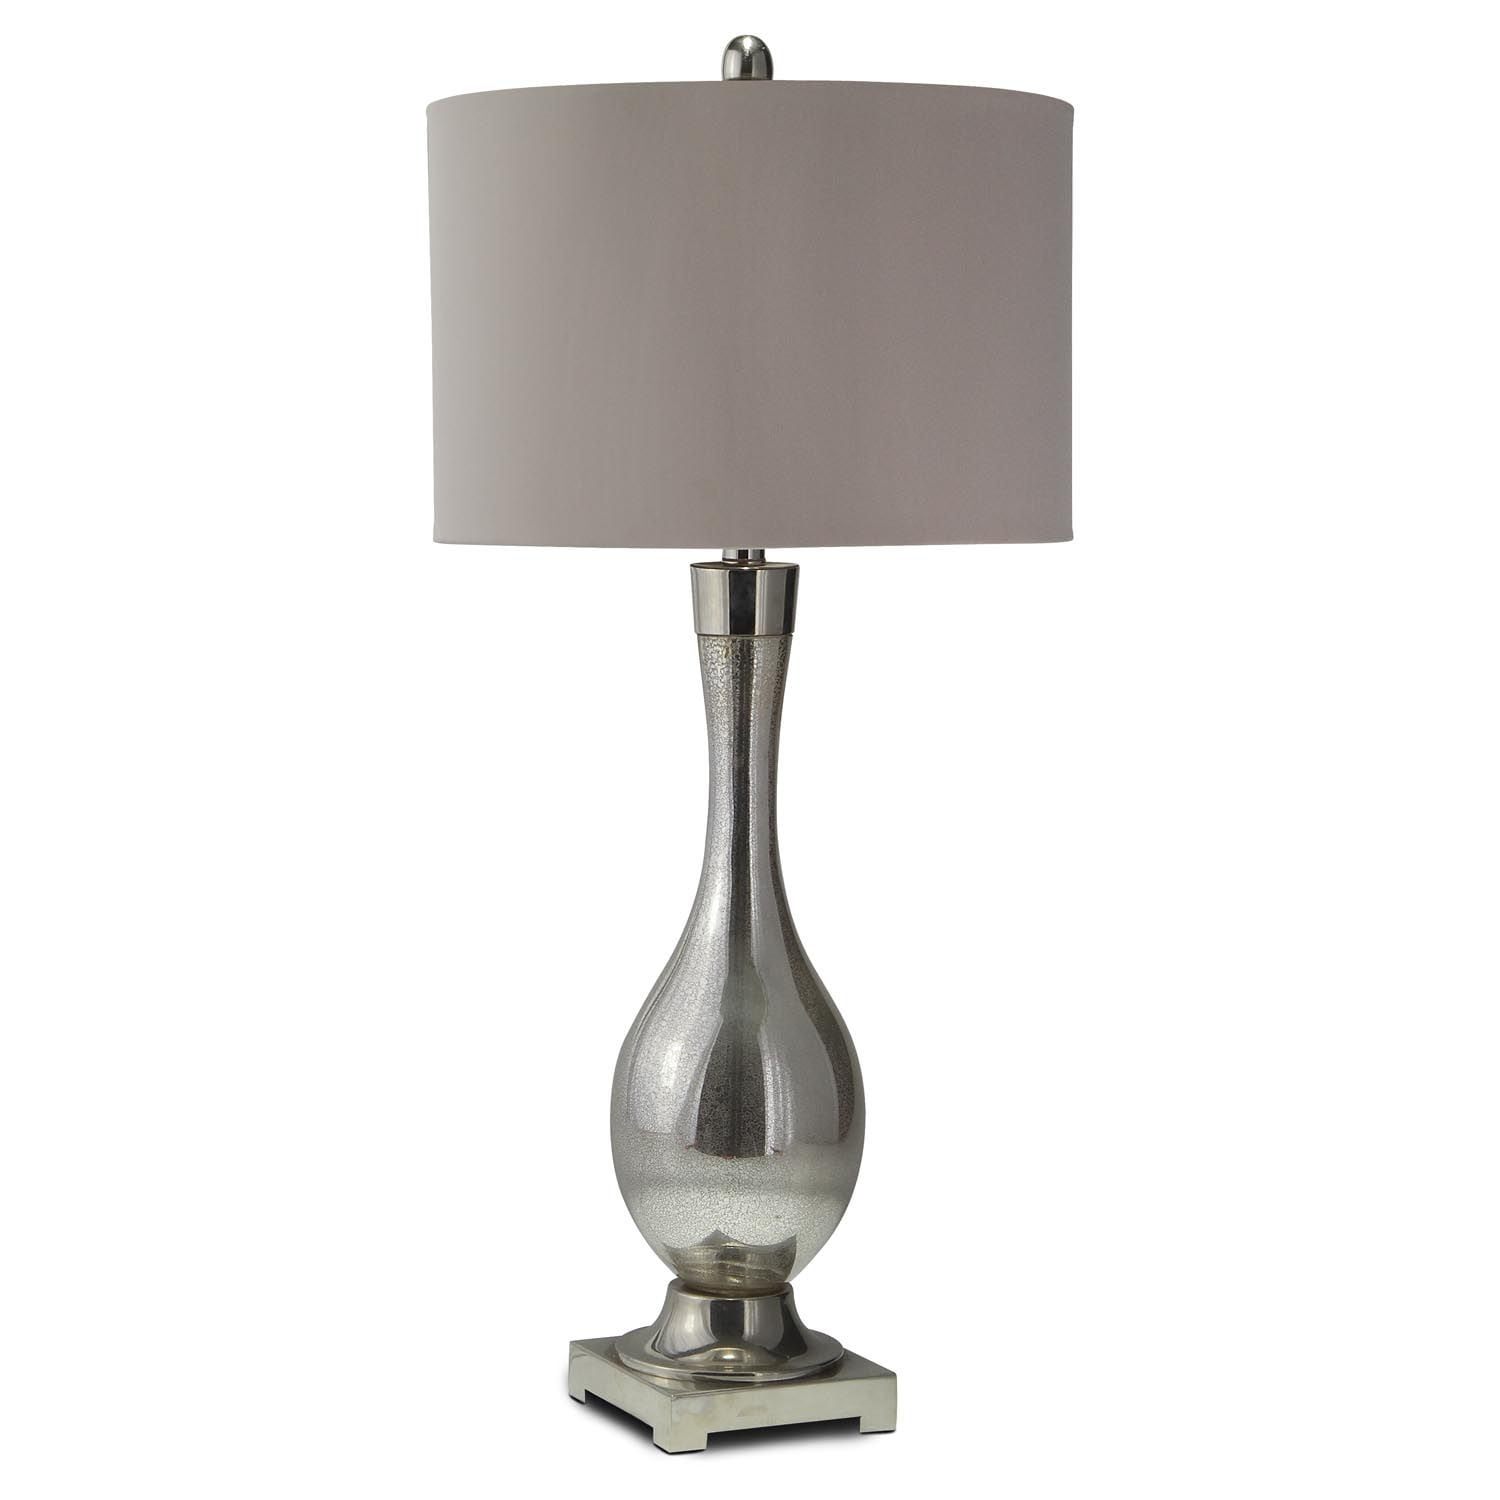 Home Accessories - Mercury Glass Table Lamp